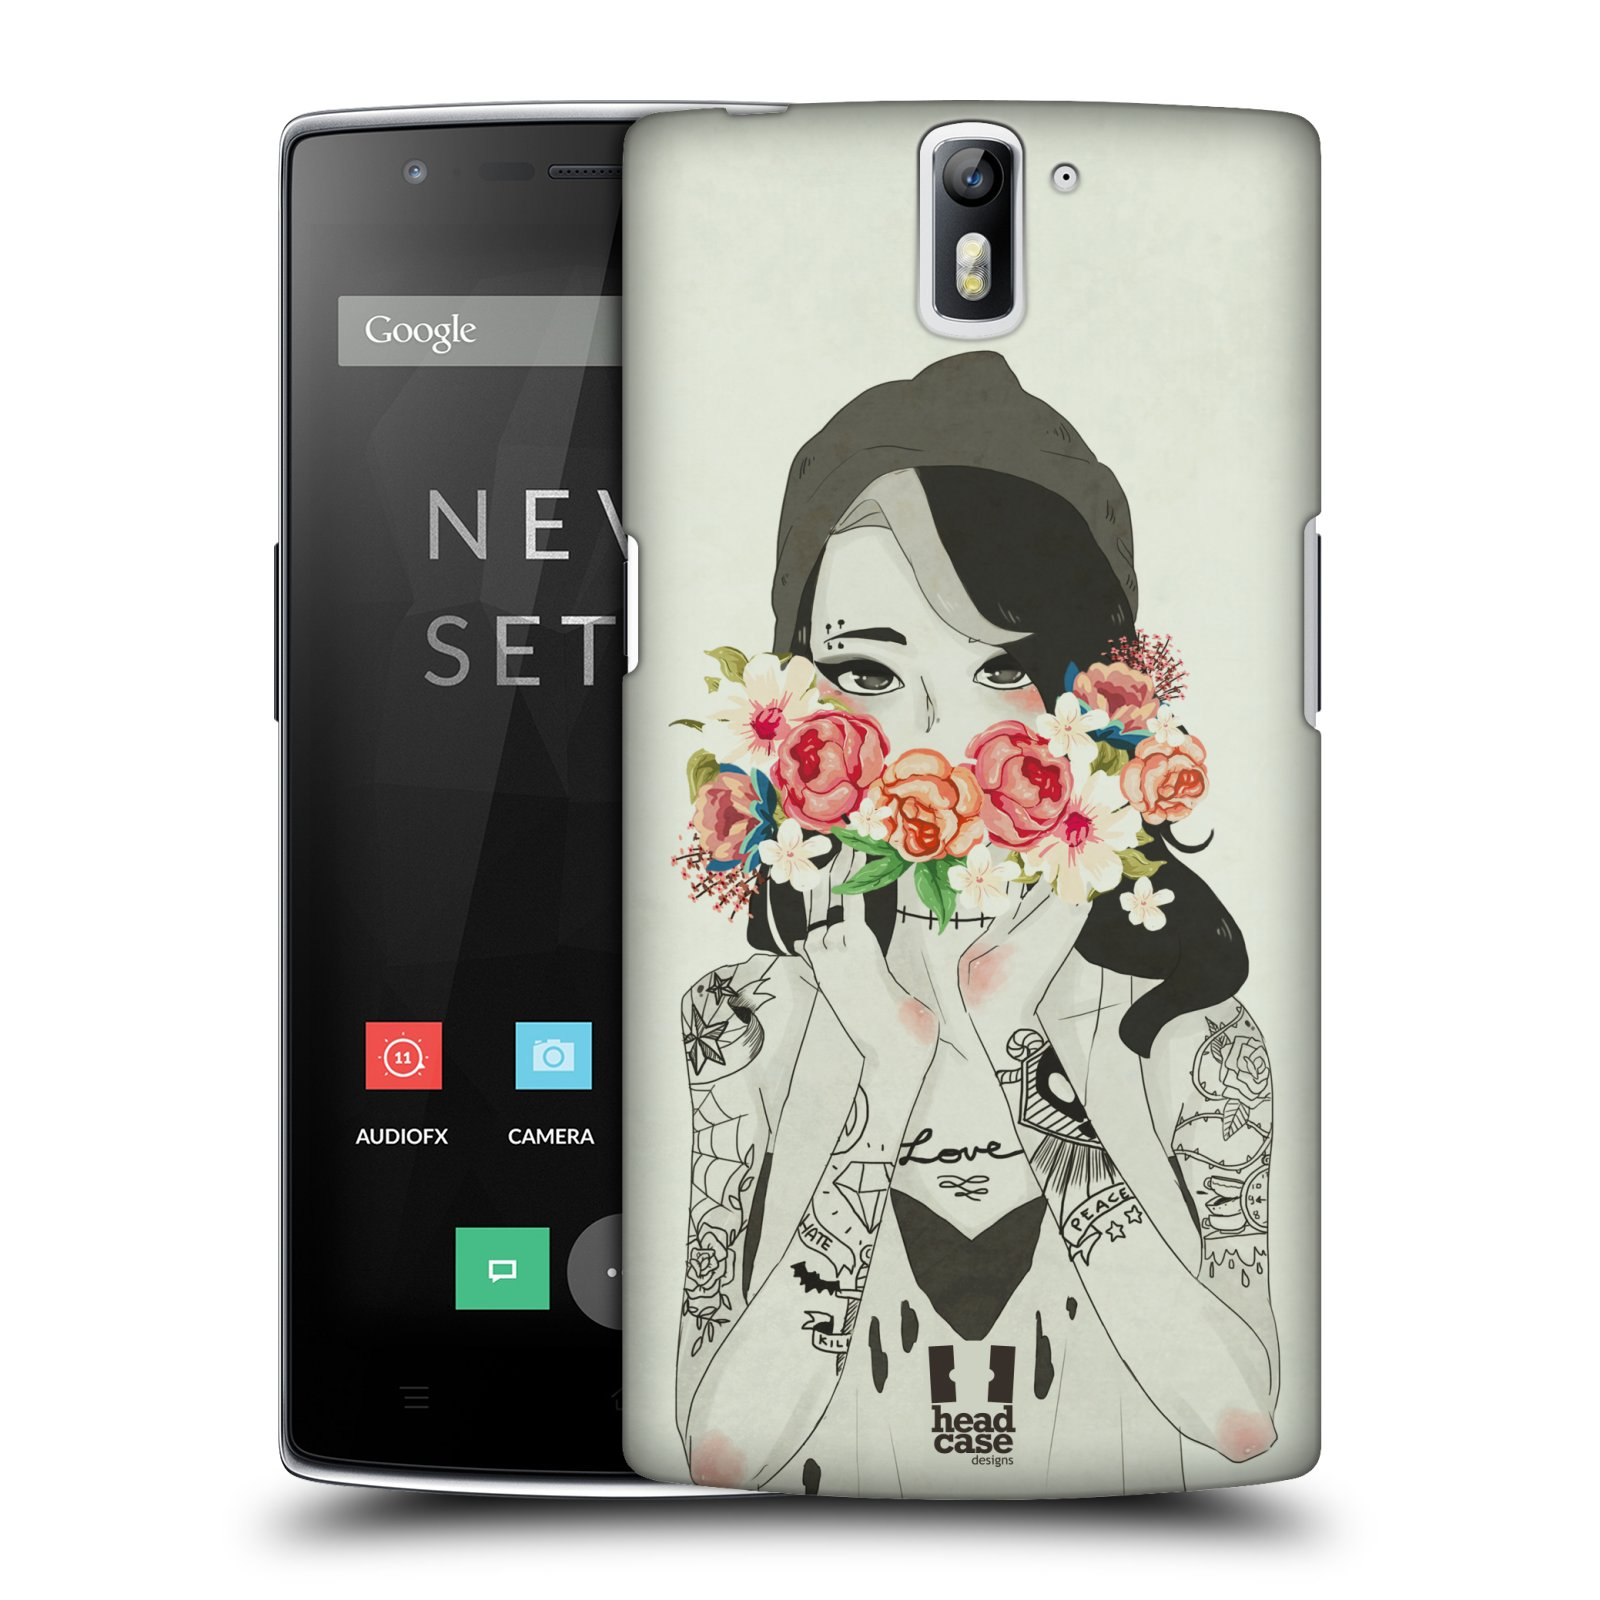 HEAD CASE DESIGNS FLORAL BEAUTIES HARD BACK CASE FOR ONEPLUS ONE